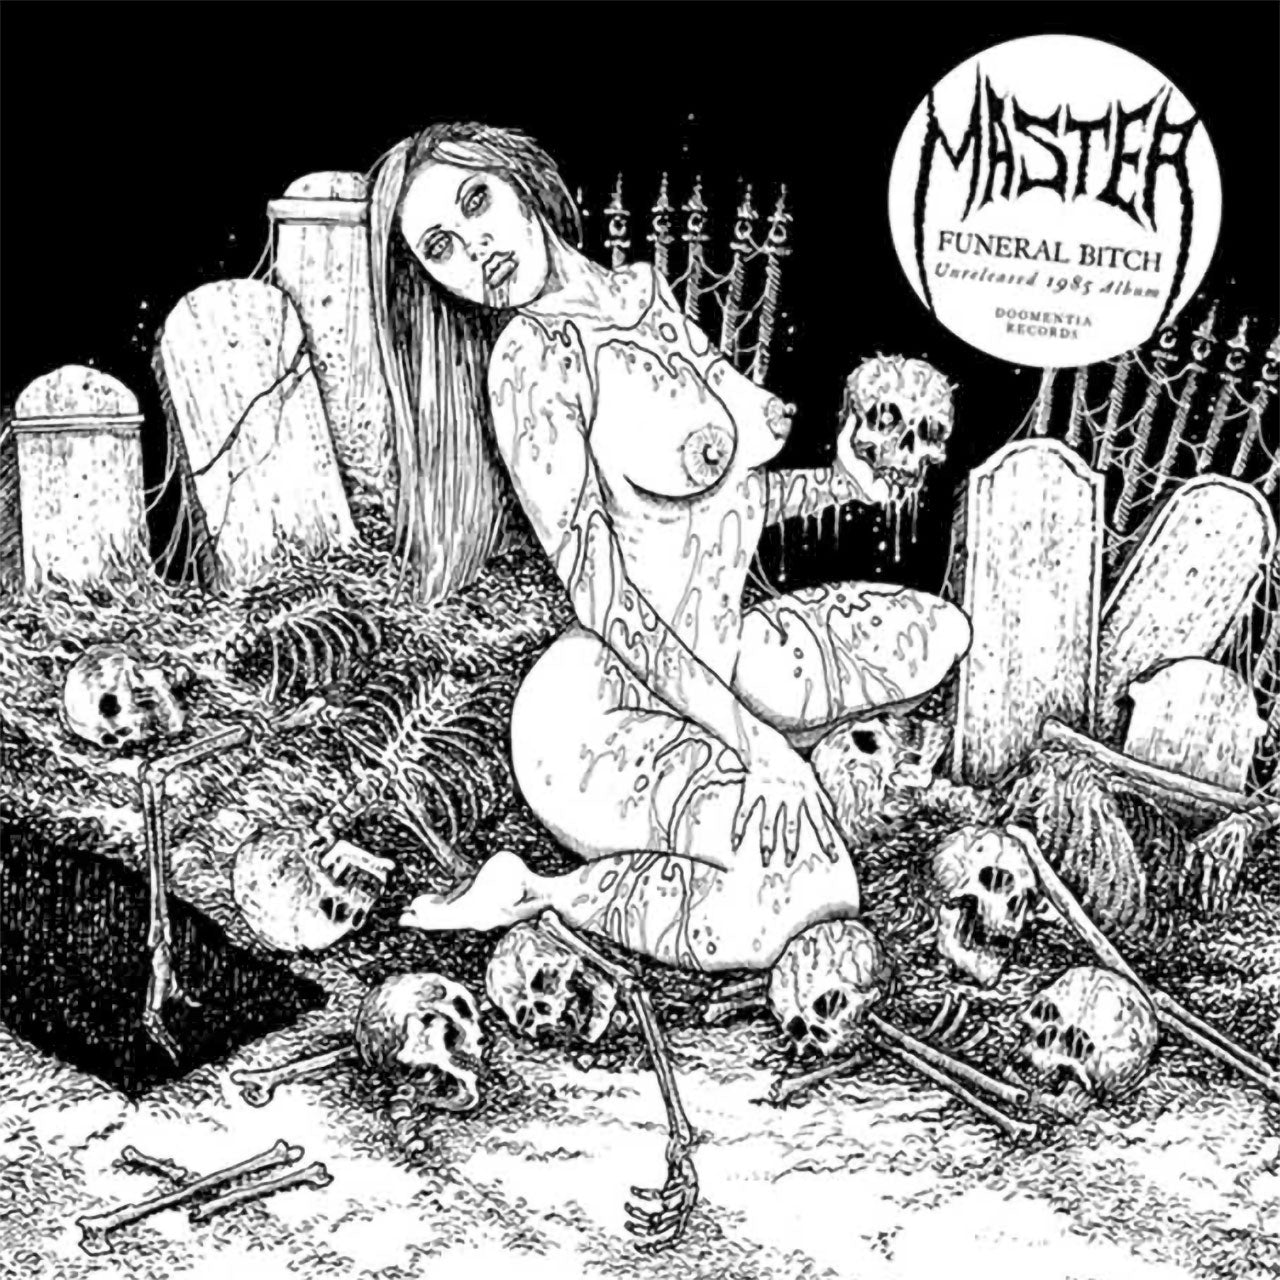 Master - Funeral Bitch (Unreleased 1985 Album) (CD)